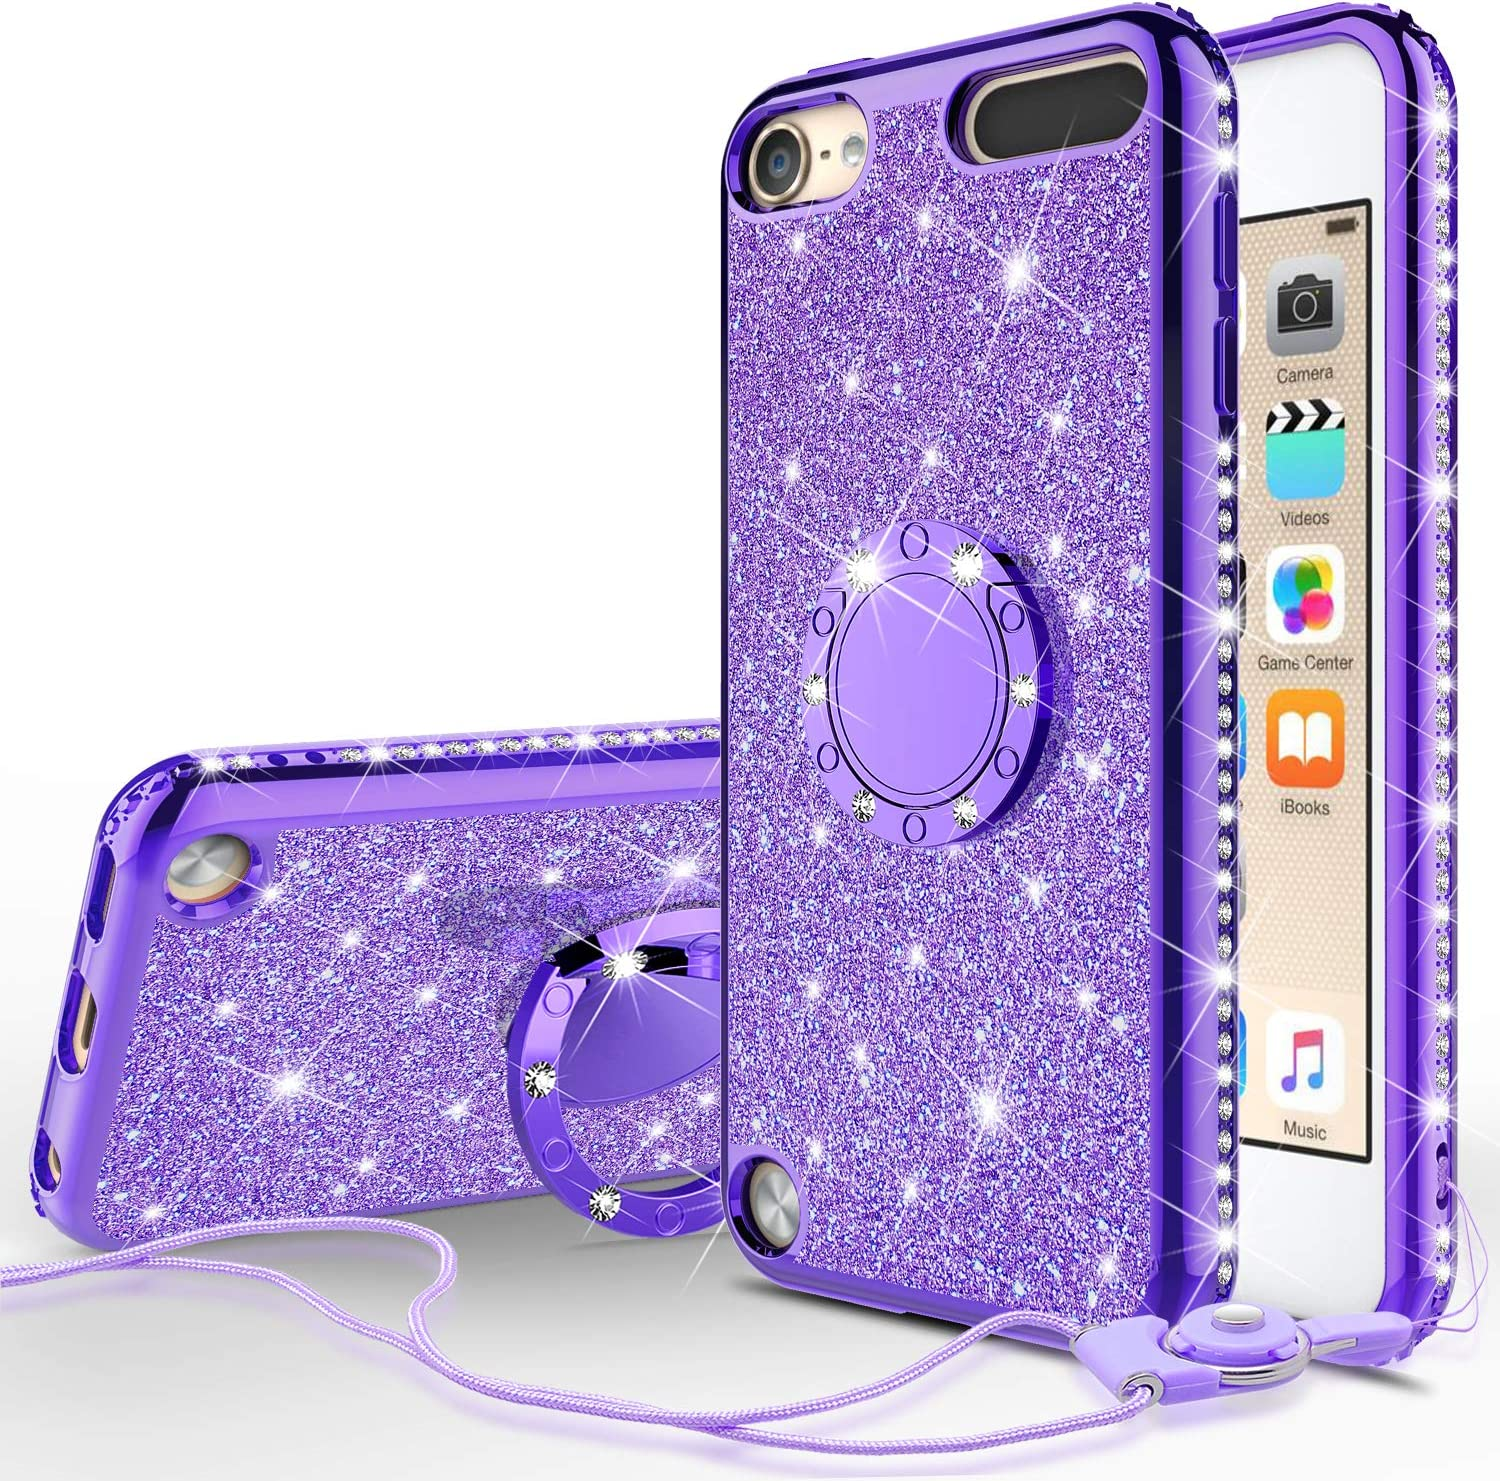 Galaxy Wireless Cases for New iPod Touch 7 Case, iPod 6/5 Case Glitter Bling Sparkle Ring Stand Case Compatible for Apple iPod Touch 5/6th/7th/New iPod Touch - Purple